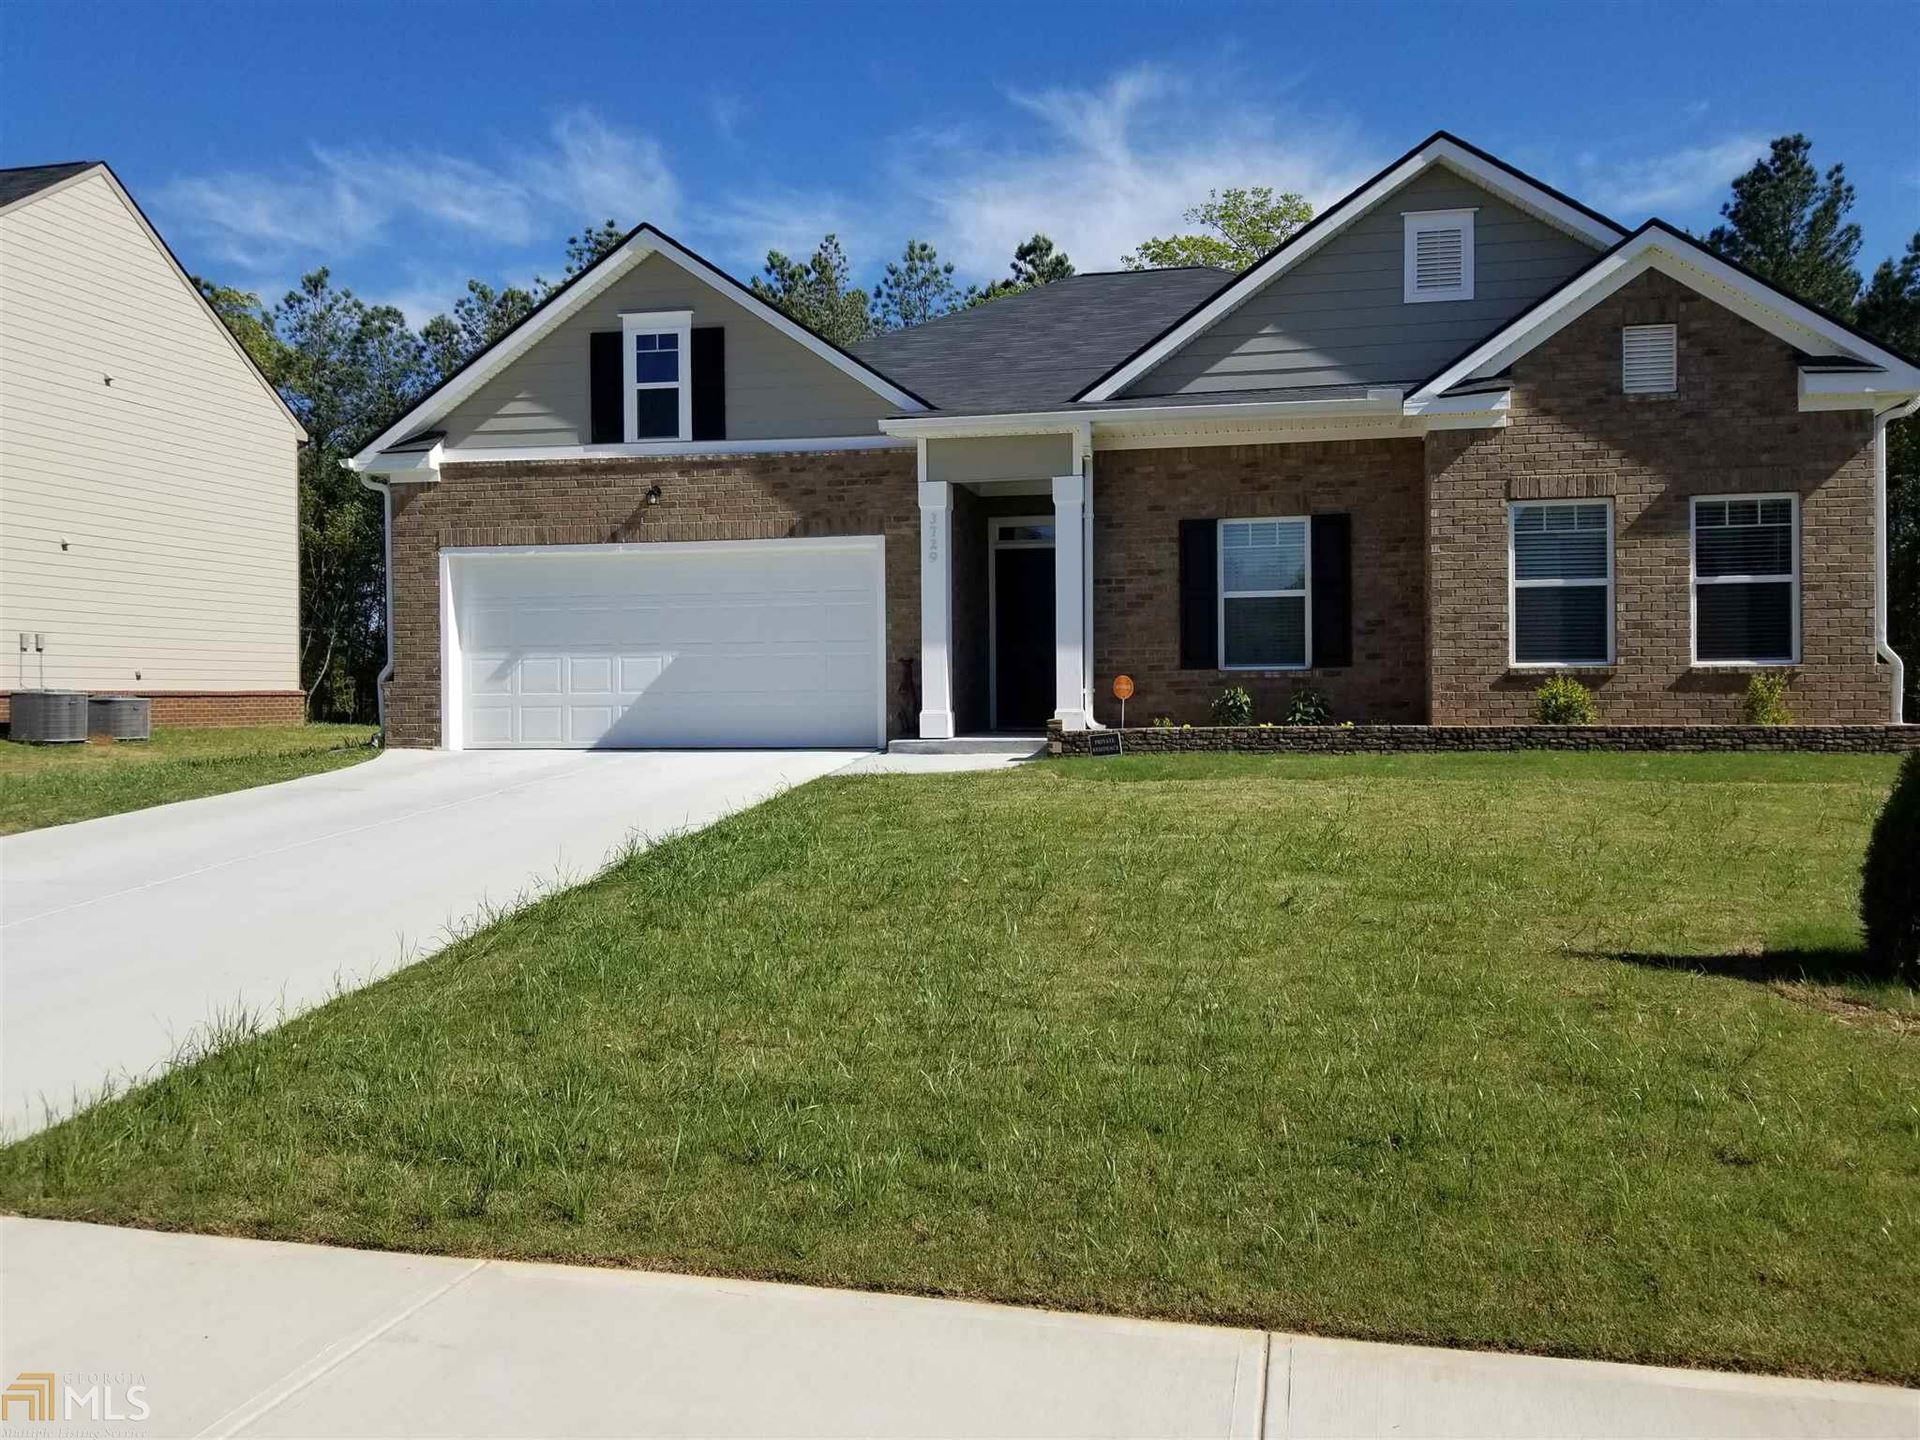 3371 Lilly Brook Dr, Loganville, GA 30052 - MLS#: 8909047